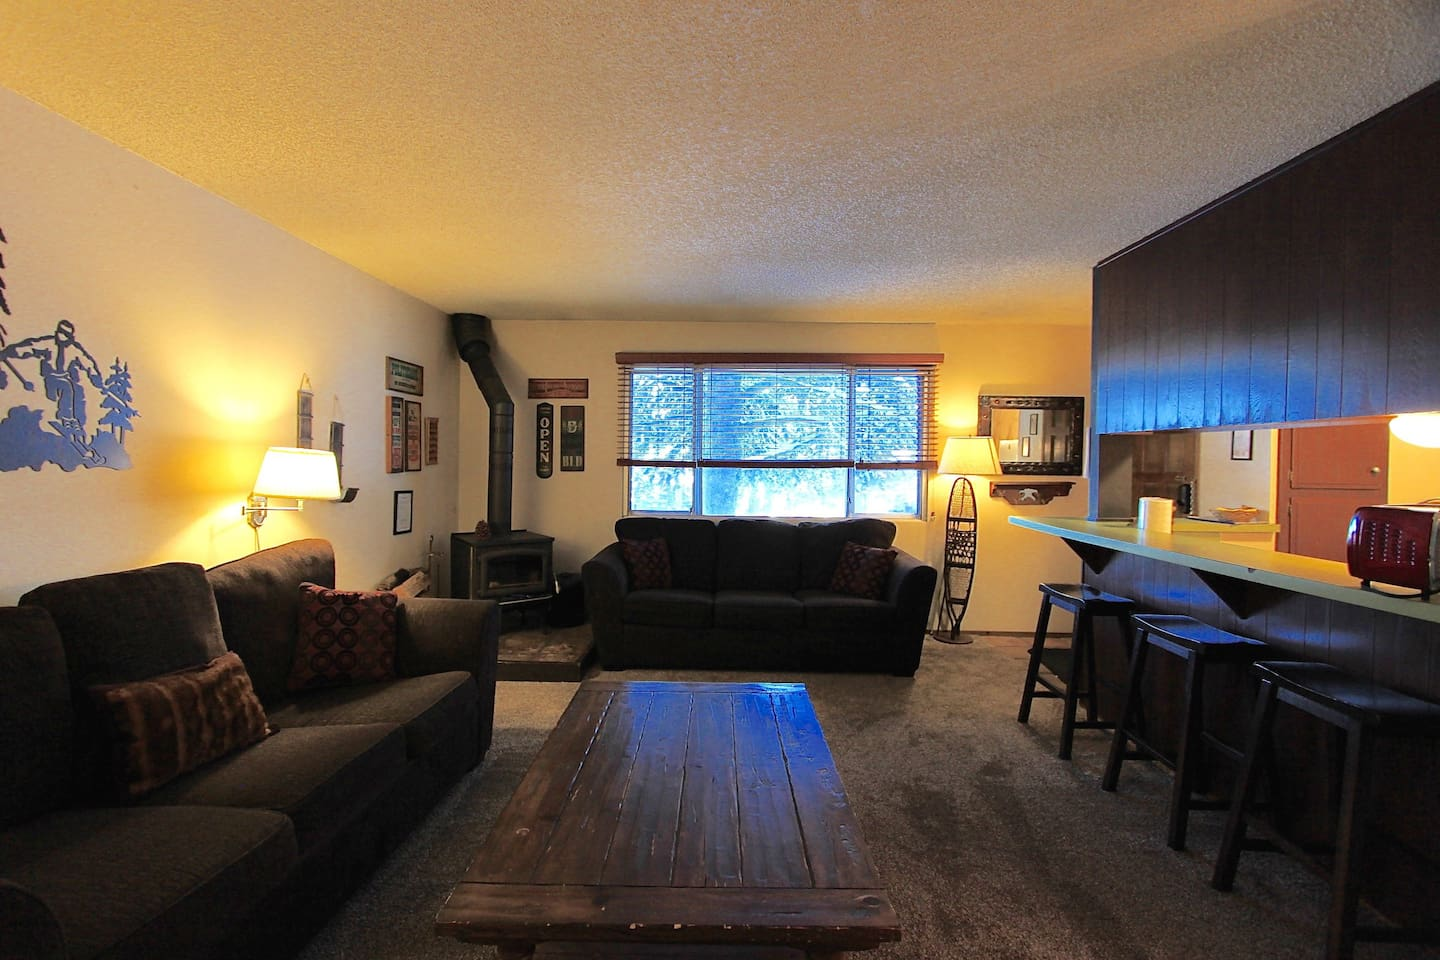 Plenty of seating in this nice open living room.